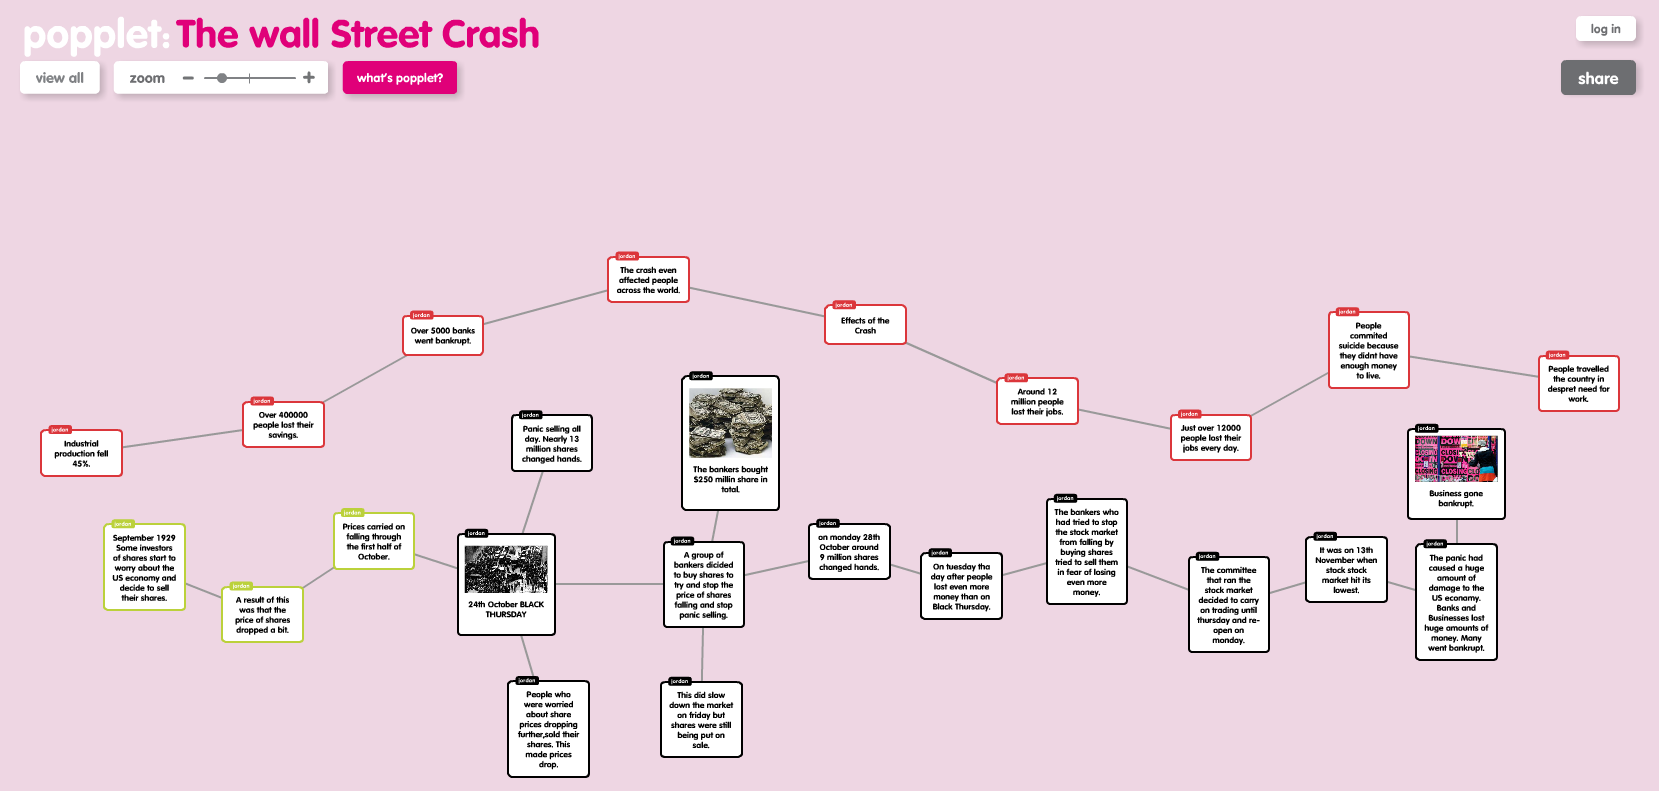 Wall Street Crash Timeline By Jordan From Mraotway S